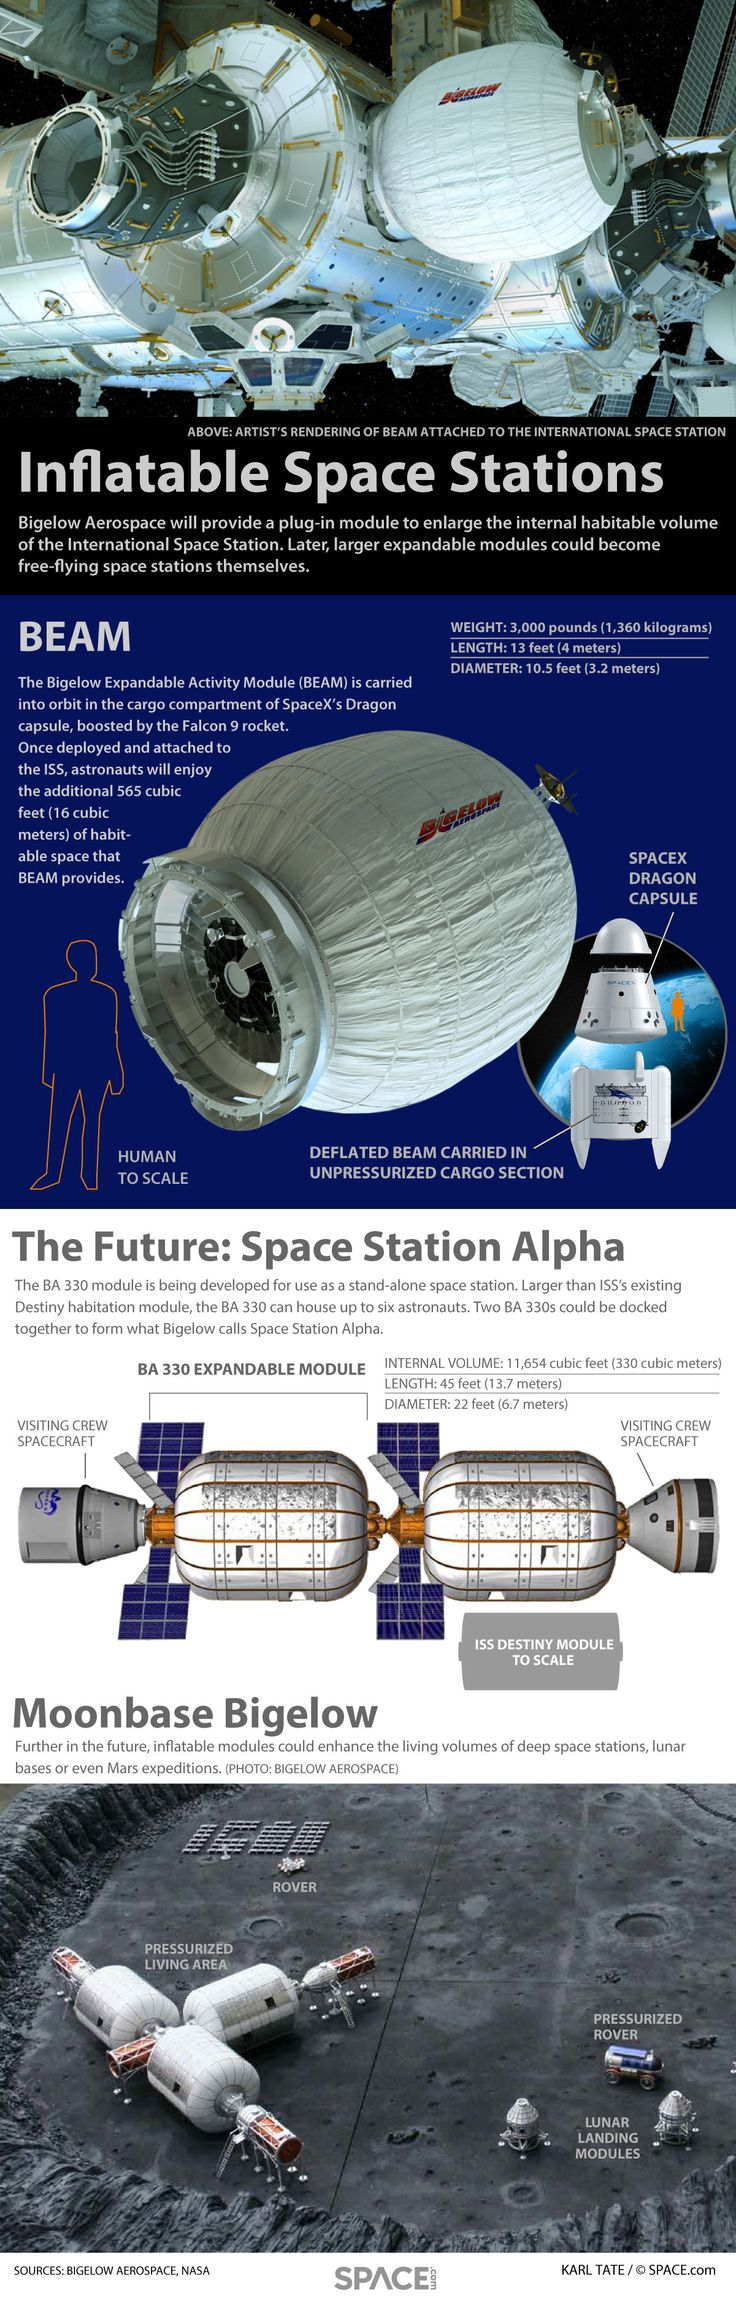 Inflatable Space Stations of Bigelow Aerospace (Infographic) By Karl Tate, SPACE.com Infographics Artist - See more at: http://www.space.com/19297-inflatable-space-stations-bigelow-aerospace-infographic.html#sthash.R1yppfAc.dpuf